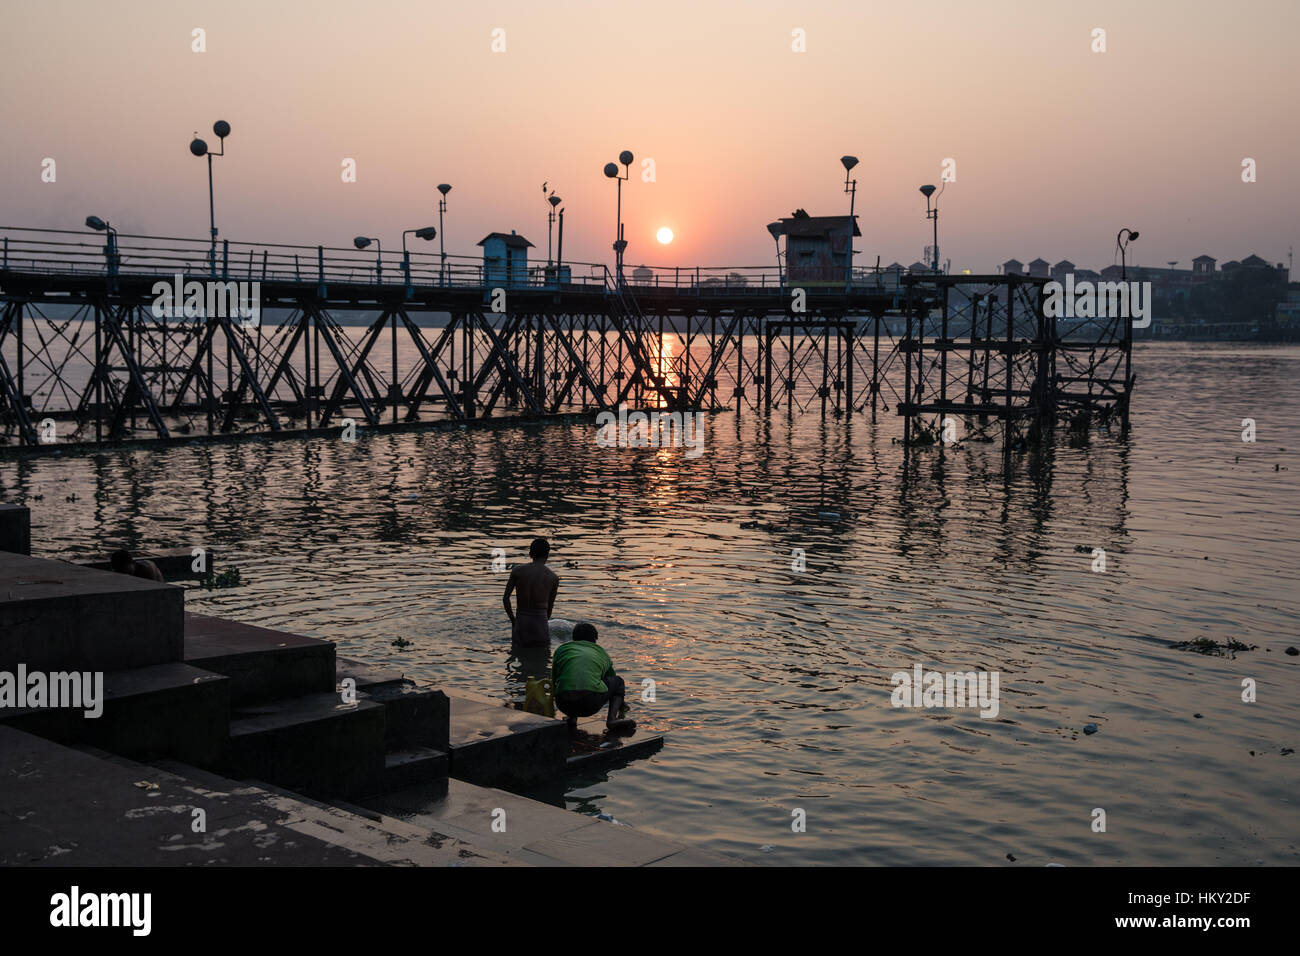 People bathe in the Hooghly River at Mullick Ghat in Kolkata (Calcutta), West Bengal, India. - Stock Image